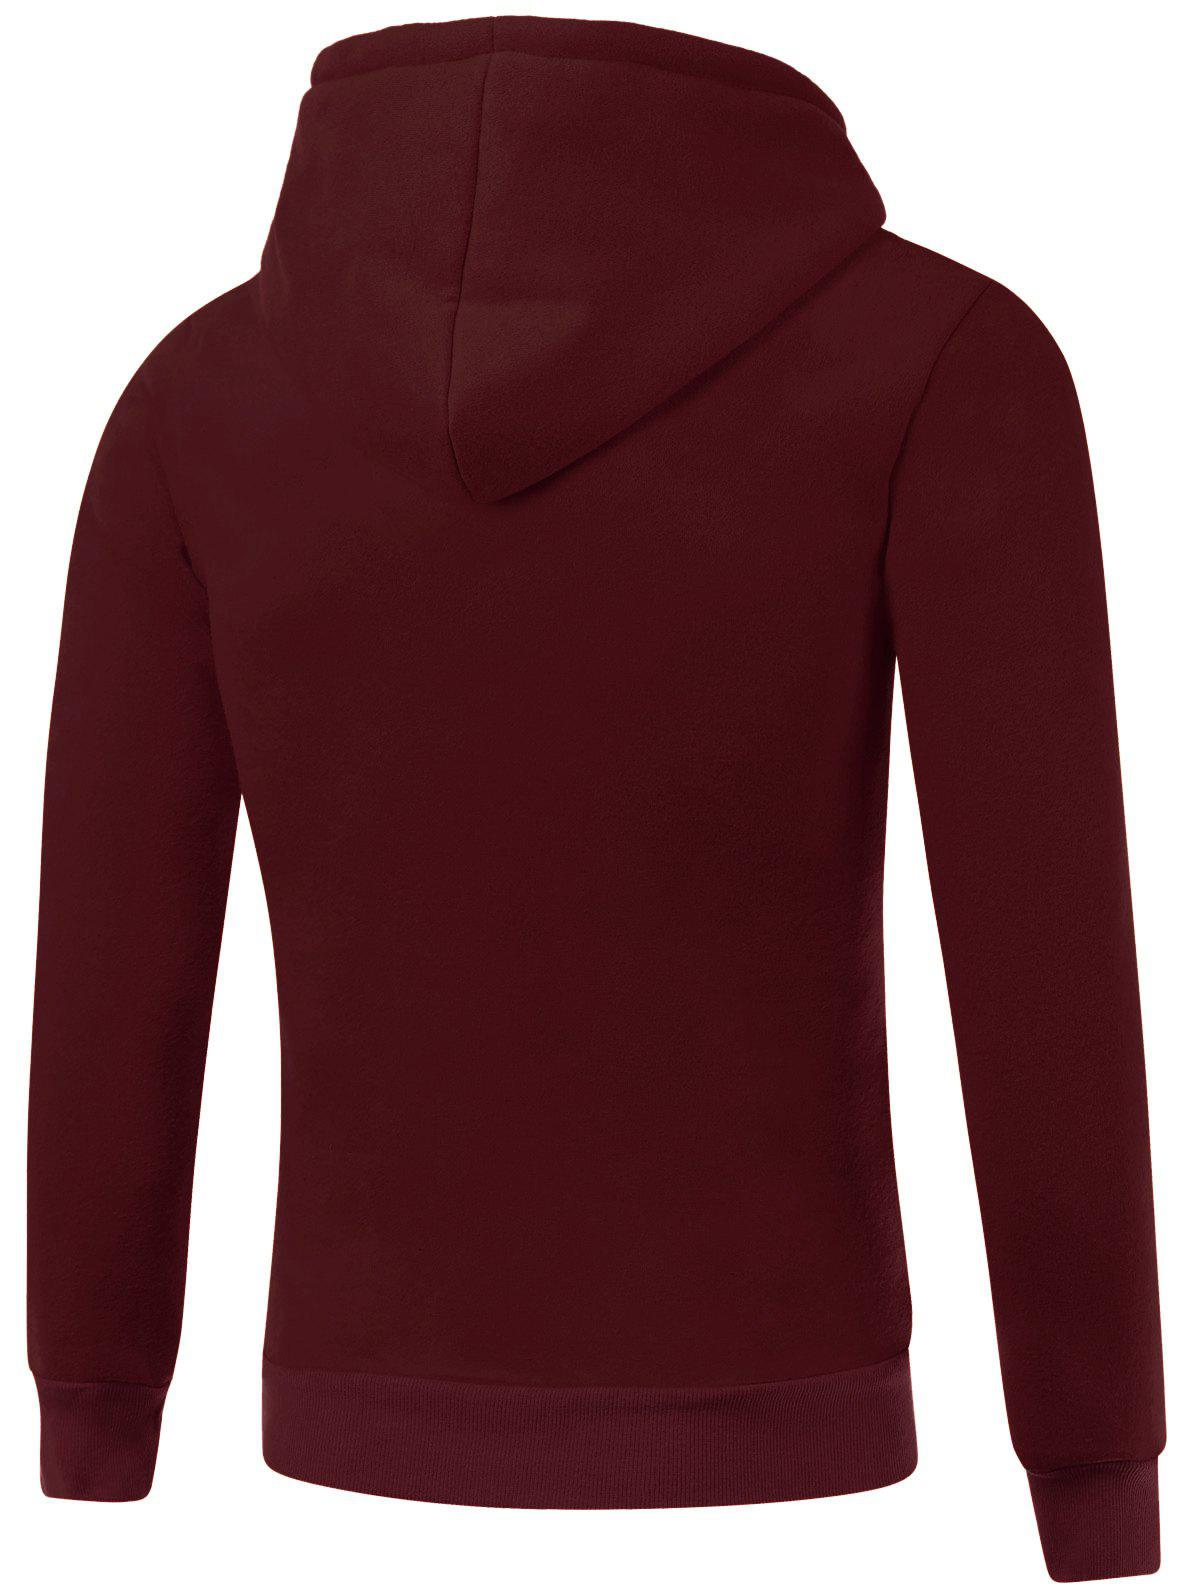 Drawstring Kangaroo Pocket Hallowmas Hoodie - Rouge vineux 3XL